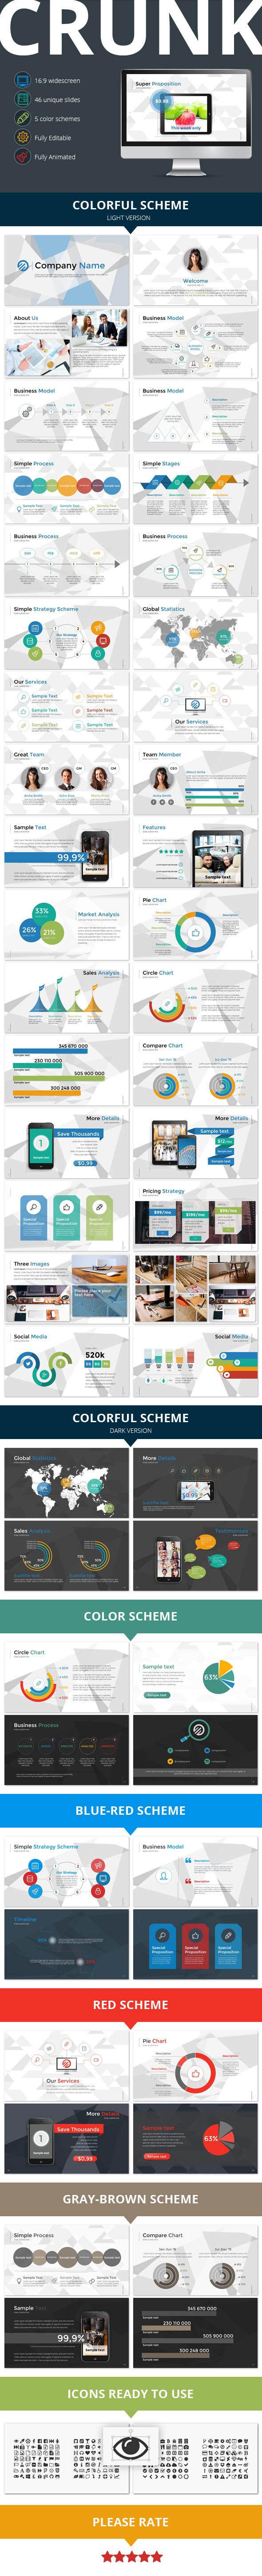 Crunk Multipurpose Presentation Template - Business PowerPoint Templates